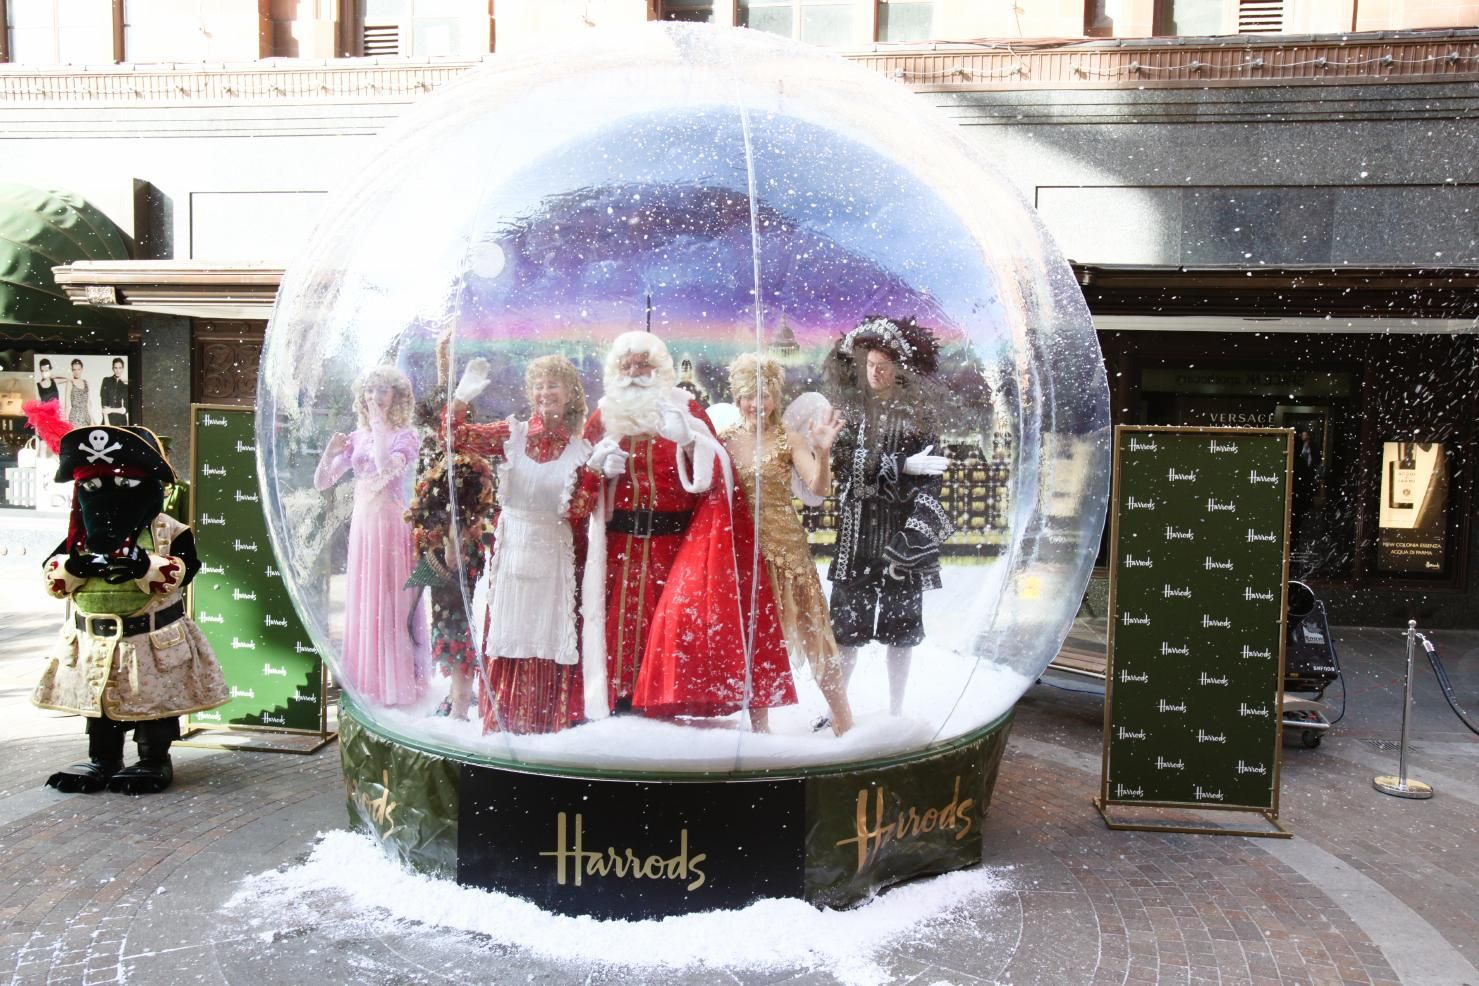 Harrods Giant Snowglobe With Images Snow Globes Snow Globes